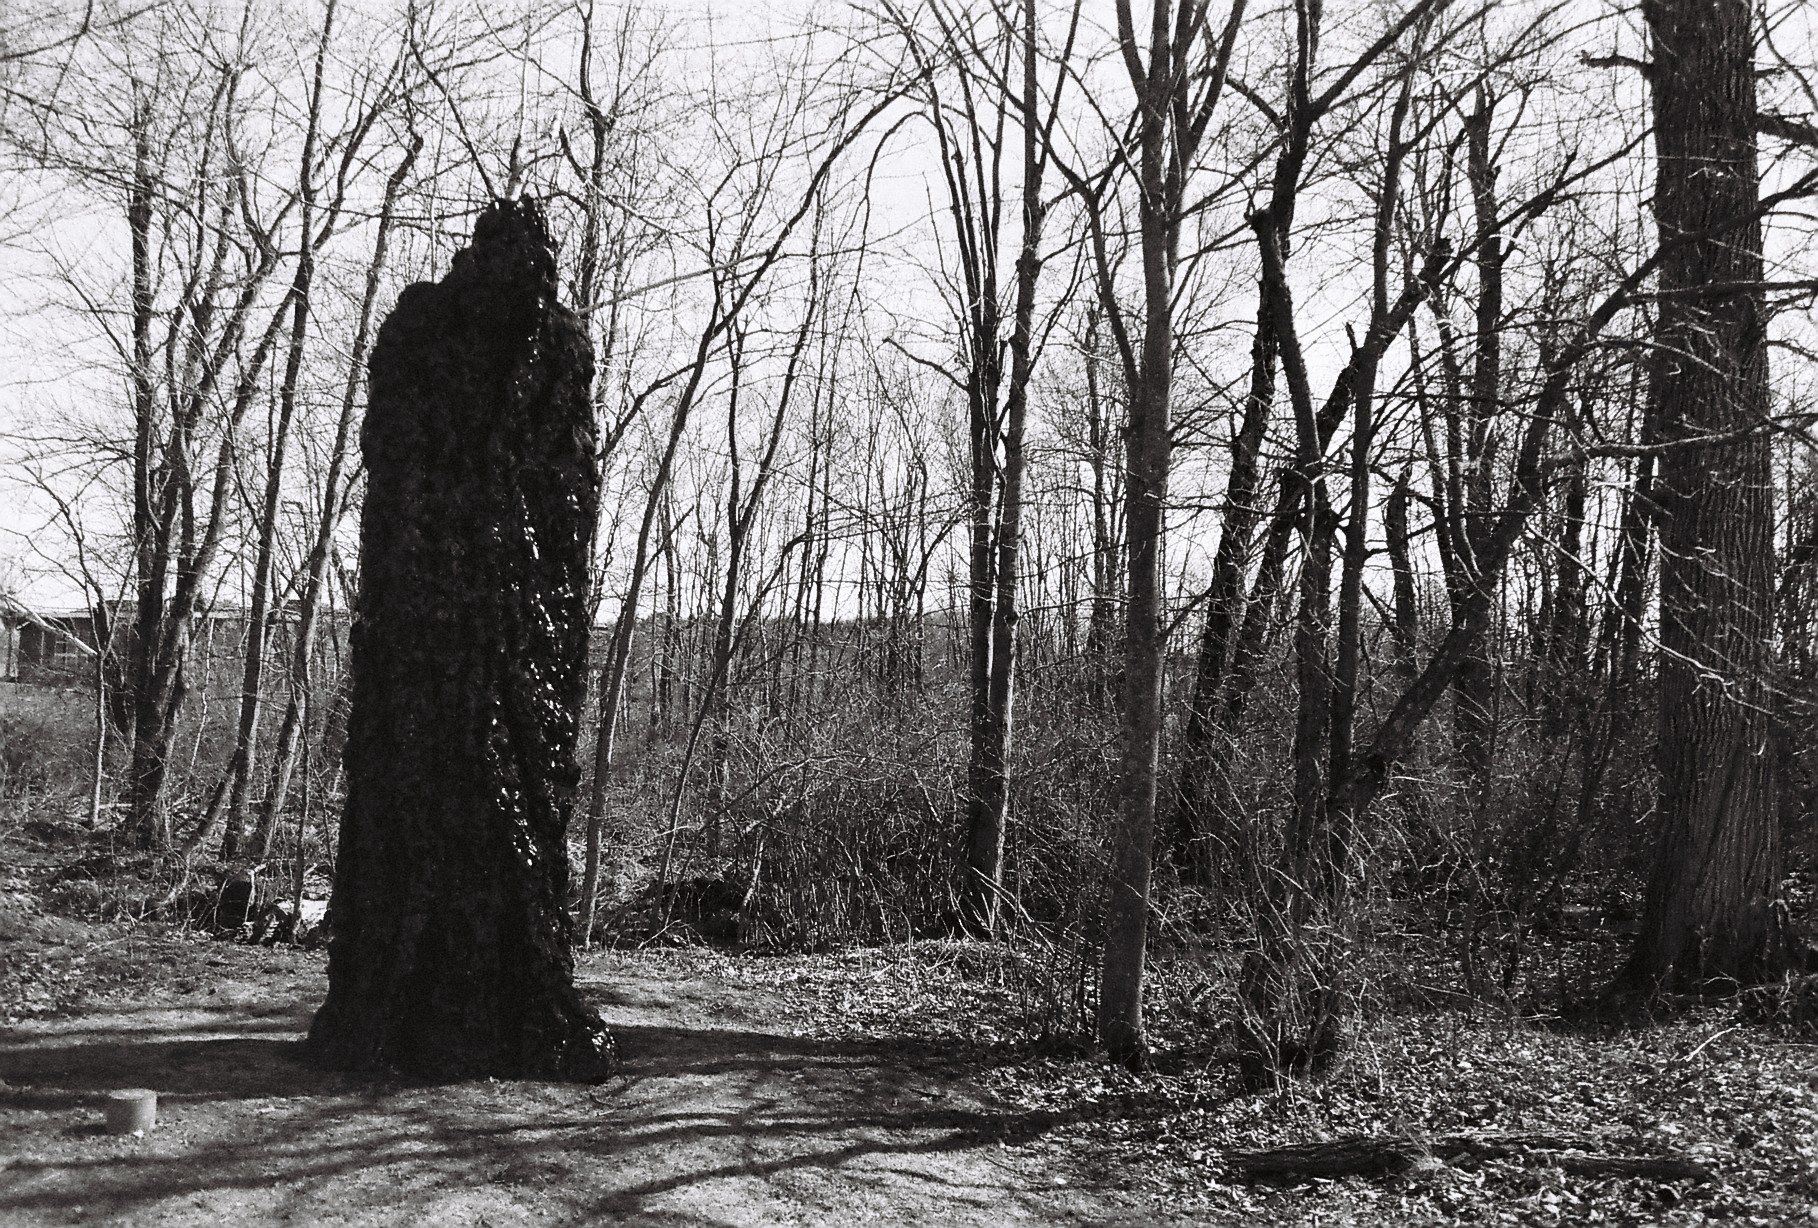 A black and white photograph of a large human-like figure wrapped in camouflage stood in woods